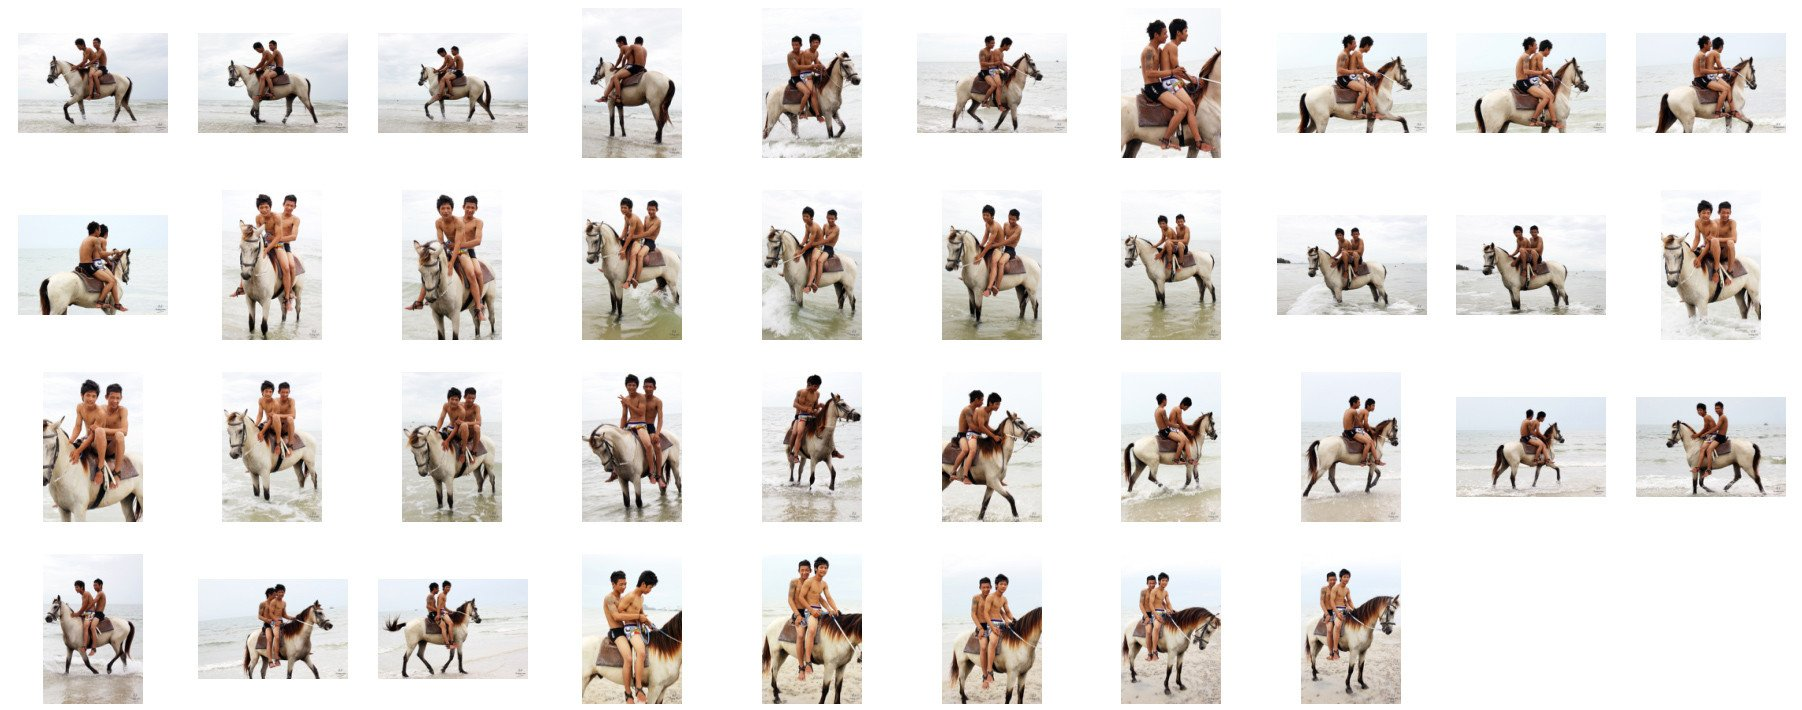 David and Thaksin in Shorts Riding Double with Saddle on Buckskin Horse, Part 6 - Riding.Vision